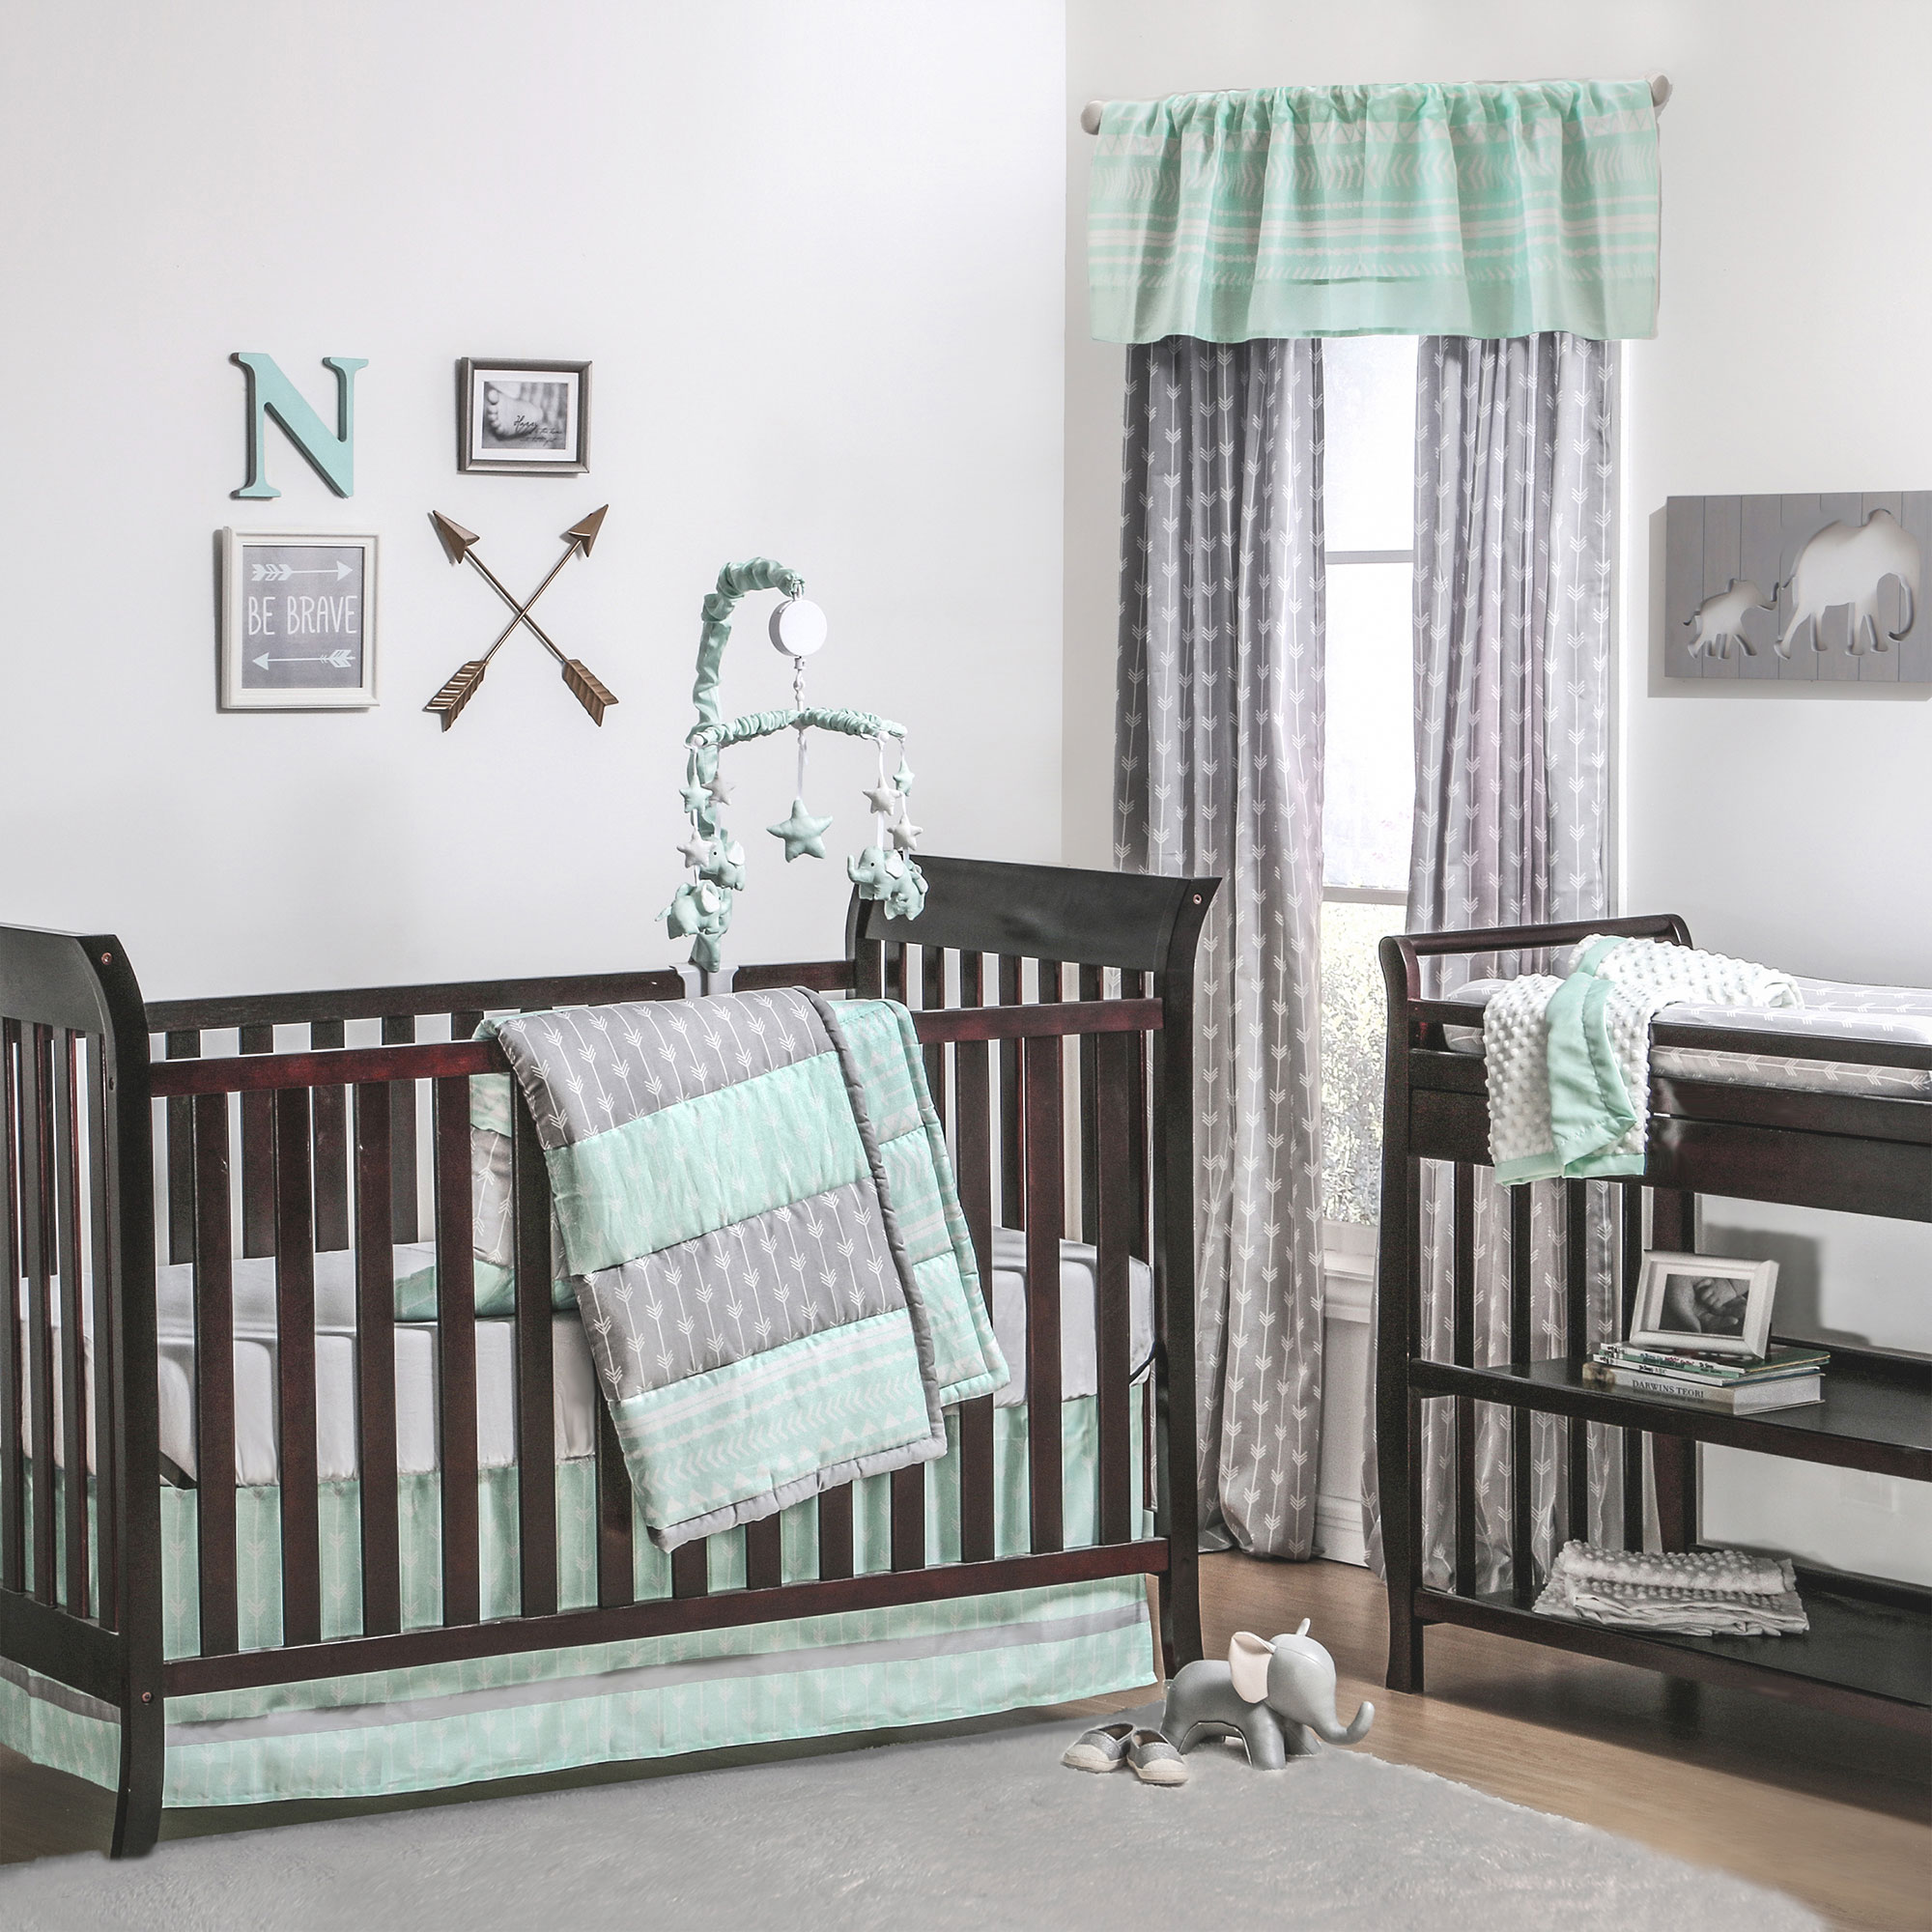 baby white boys tags rcycle grey cream bumper dirt superhero you all bedroom bedding nursery set skirt navy black t and of bed mini porta simple designer rustic tag decor full boy too don bunny get may be pink sets excited not blue crib portable size bike